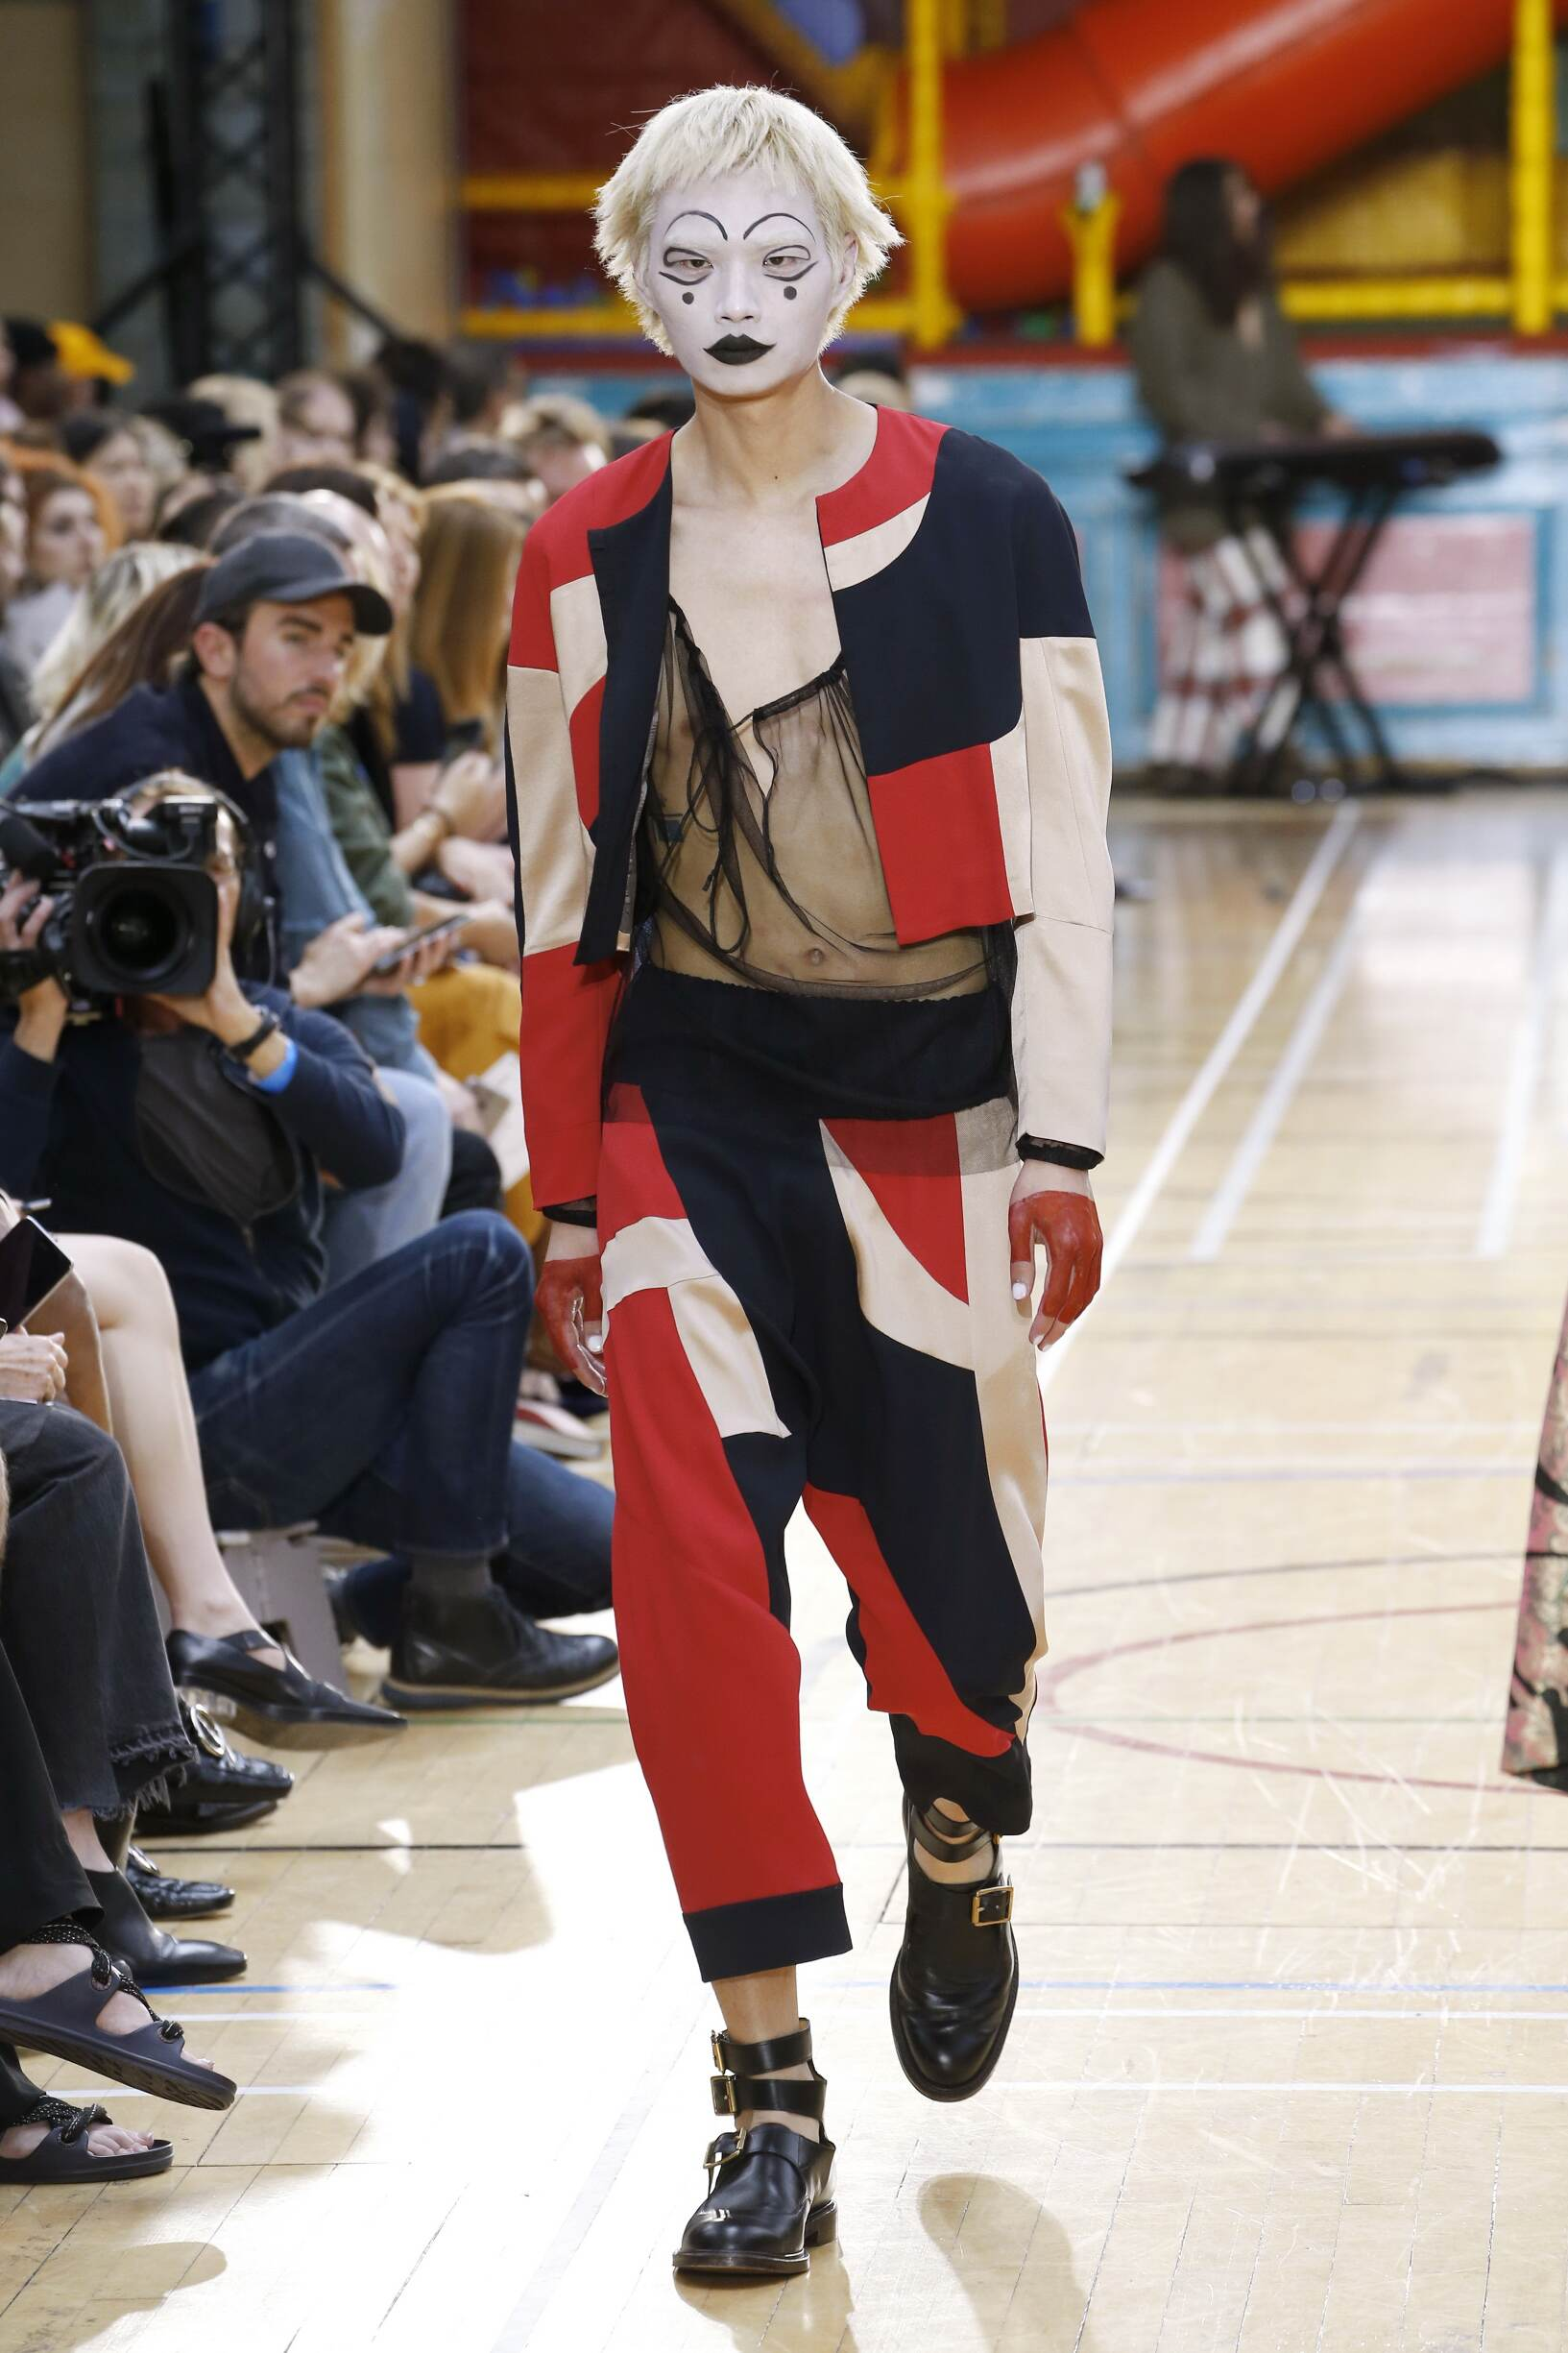 Vivienne Westwood Menswear Collection Trends